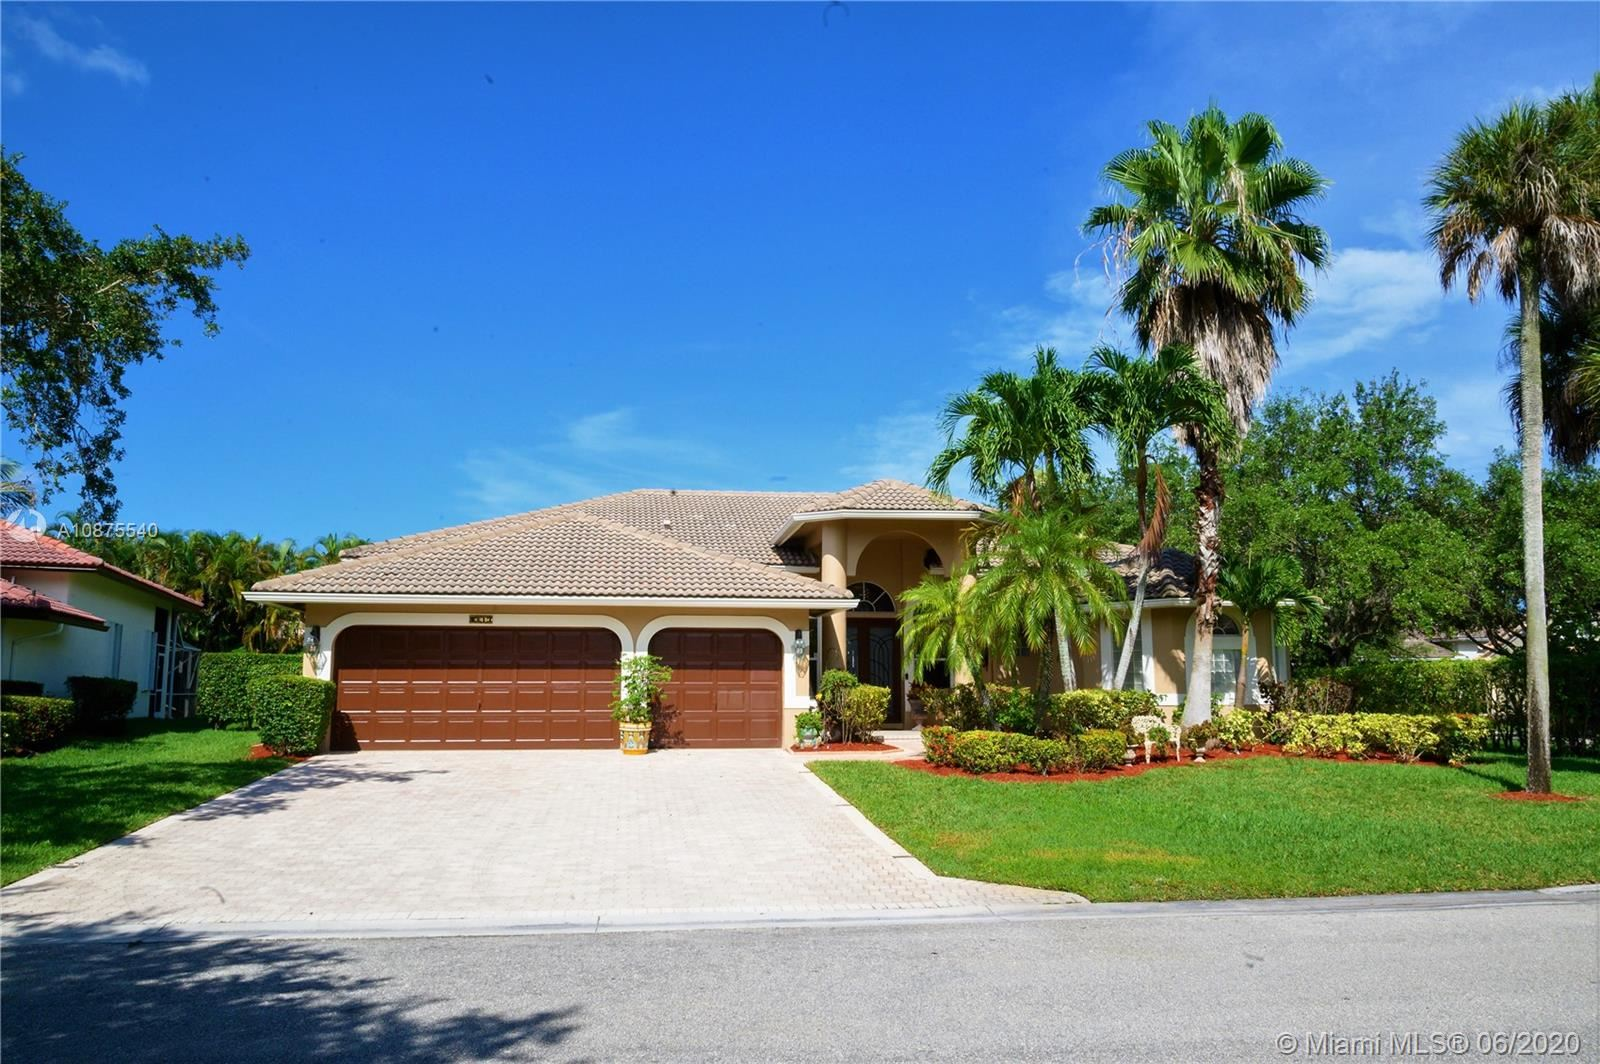 4917 NW 110th Ter, Coral Springs, FL 33076 - #: A10875540